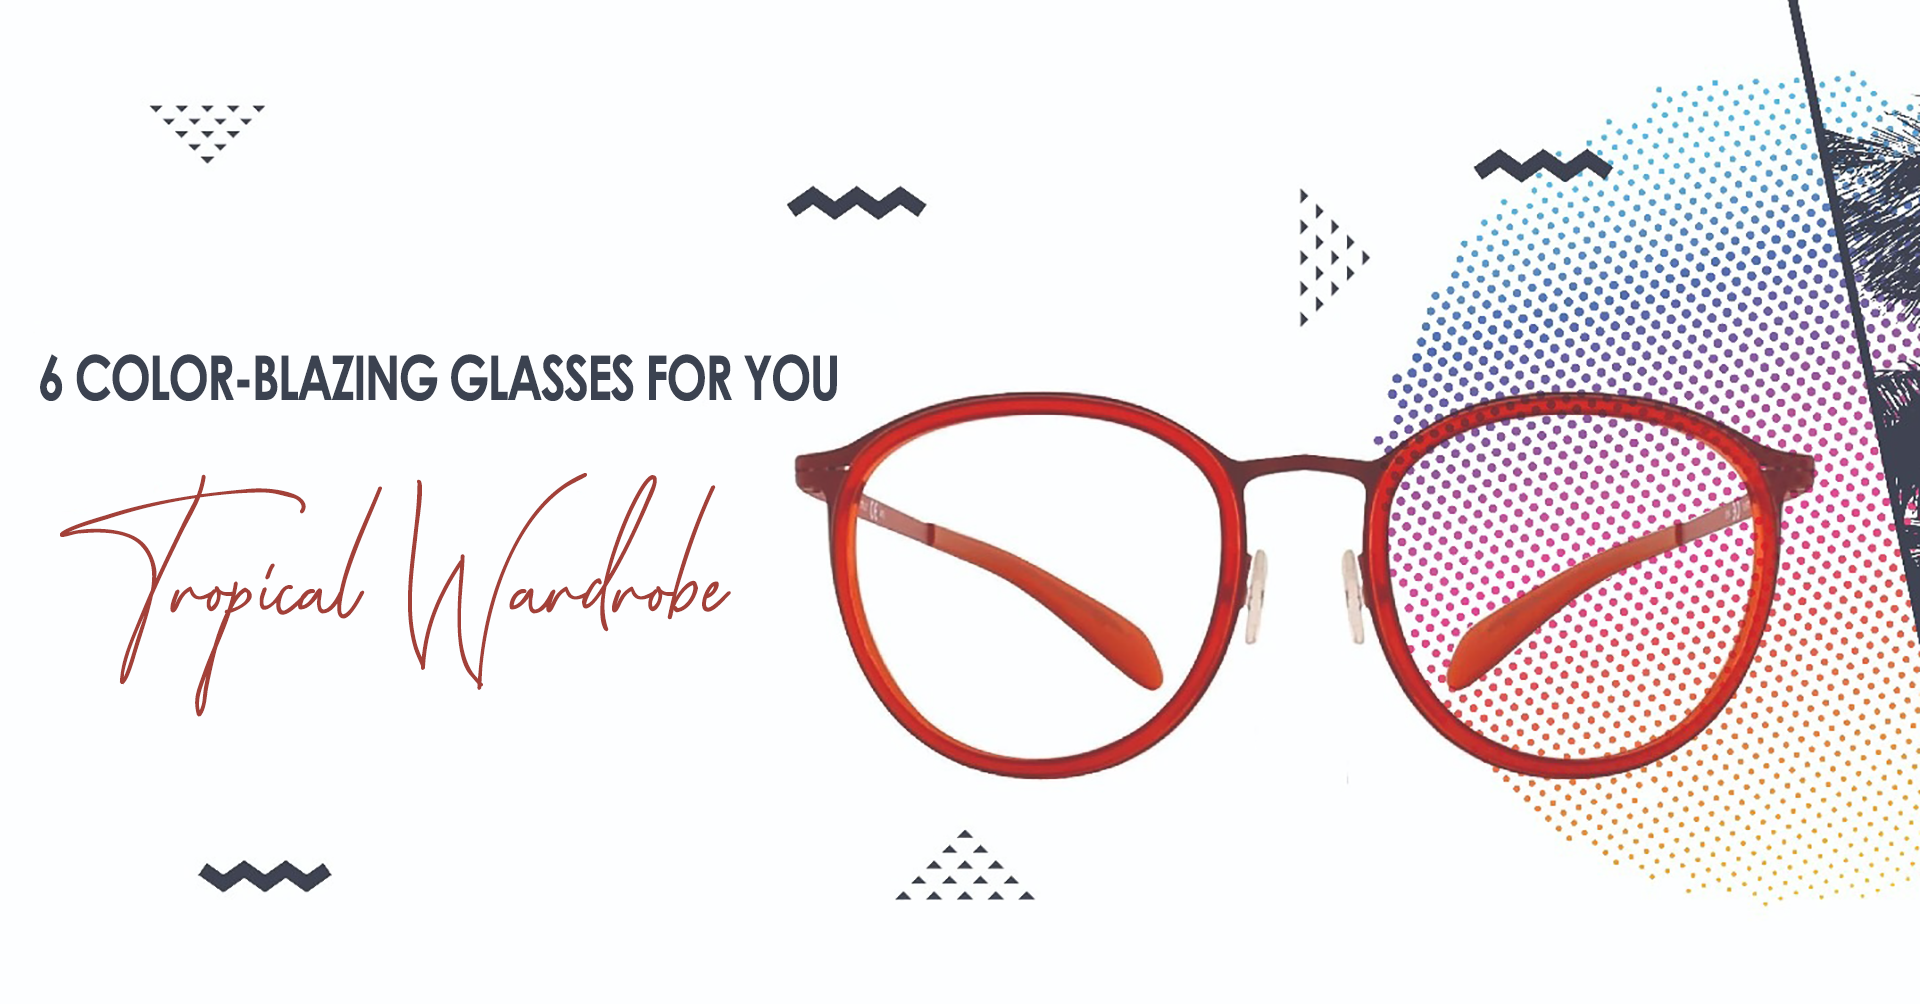 2) 6 COLOR-BLAZING GLASSES FOR YOUR TROPICAL WARDROBE